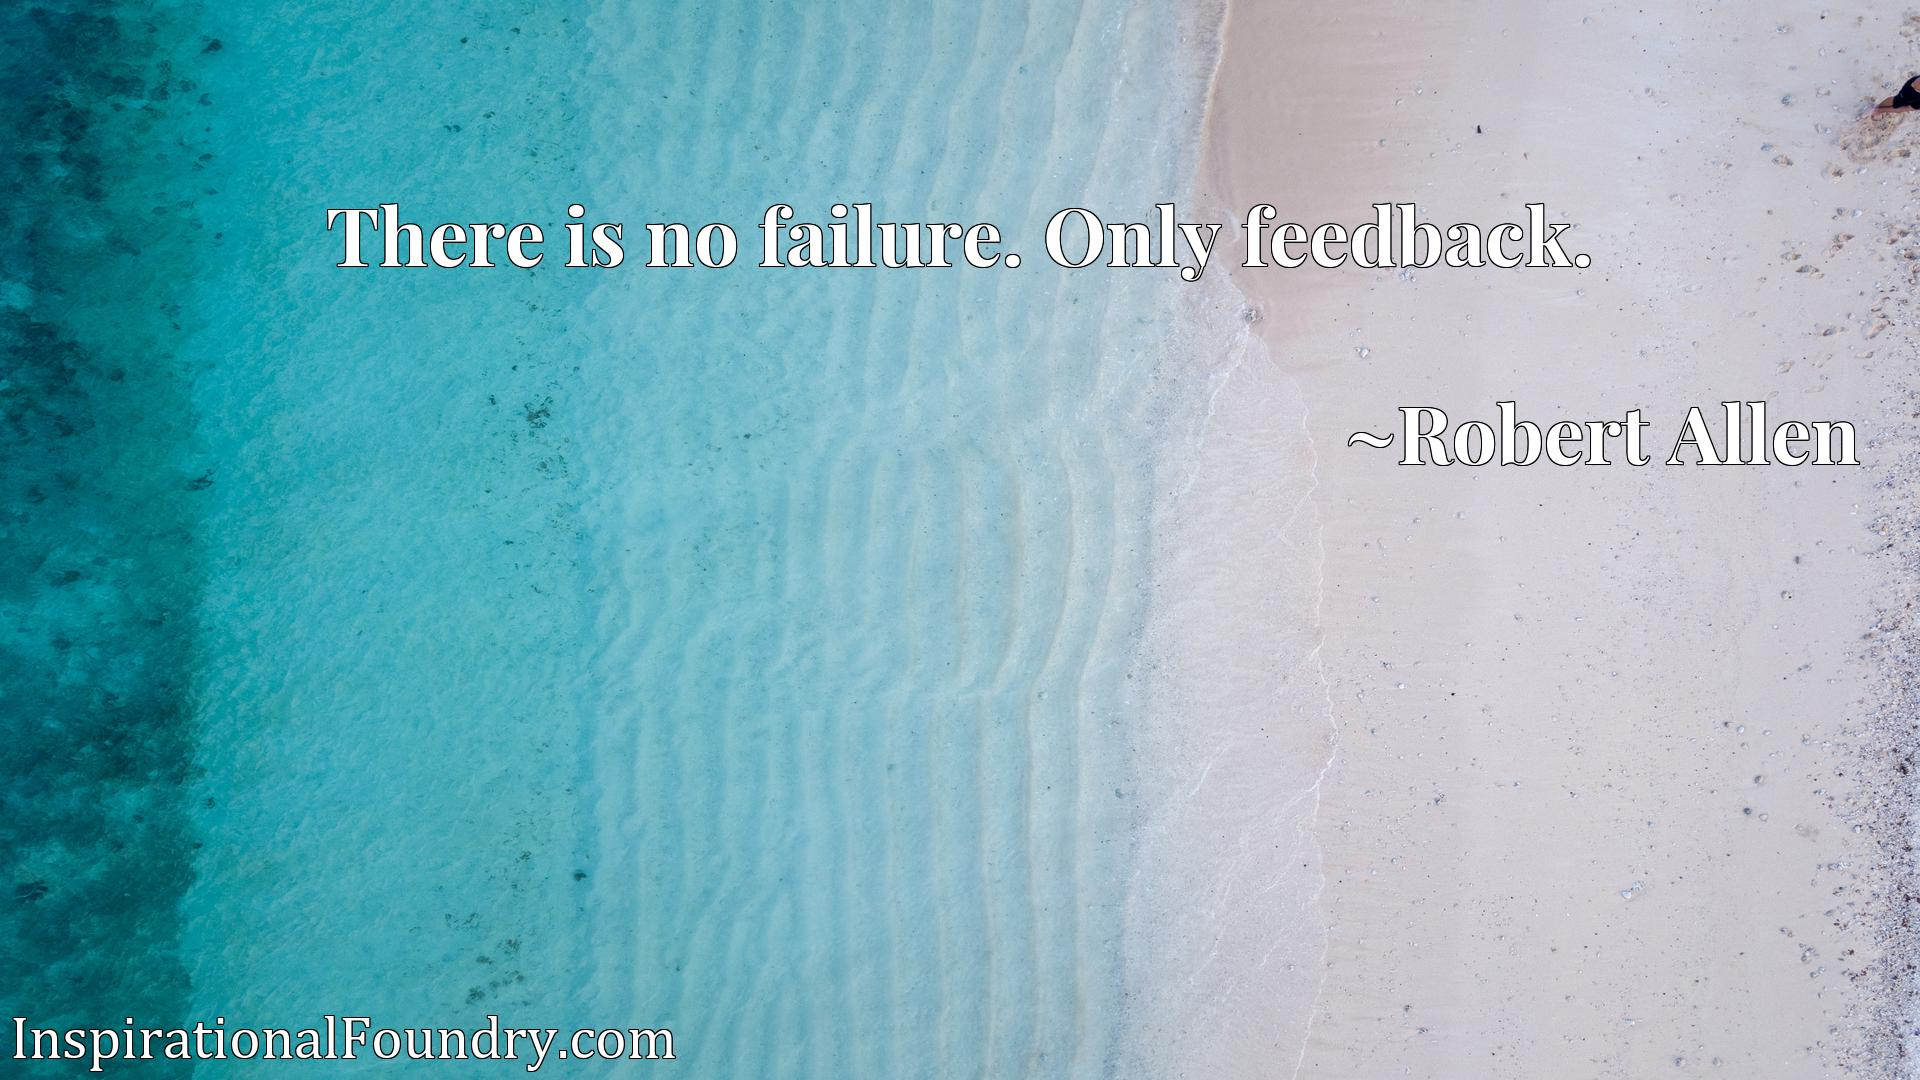 There is no failure. Only feedback.